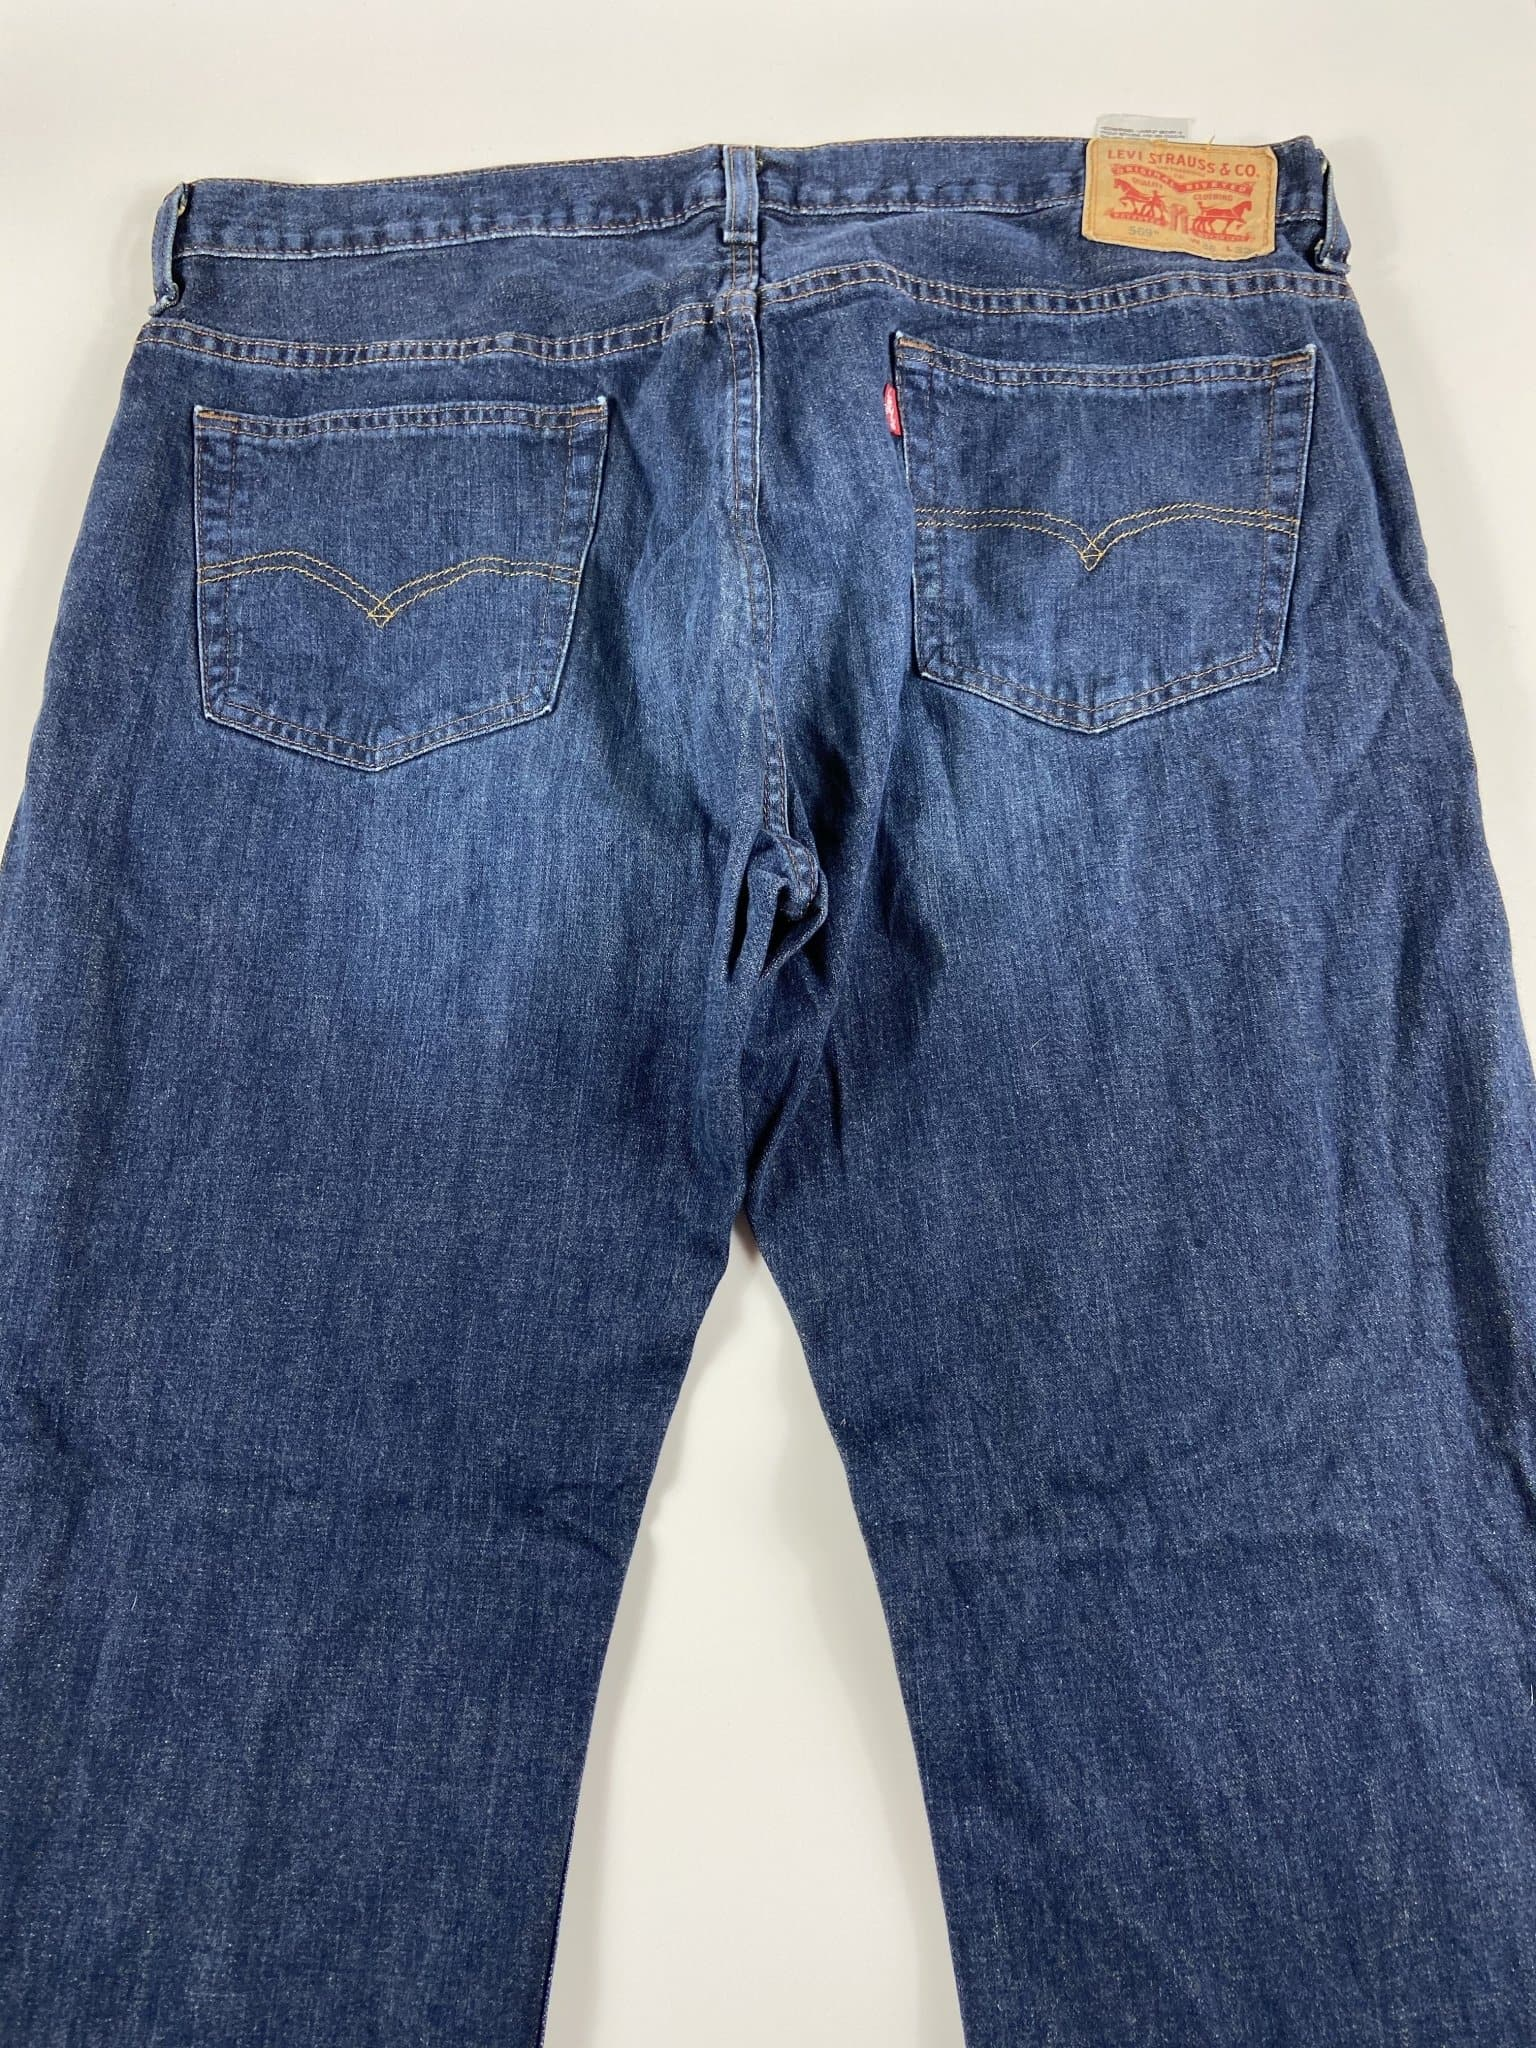 Vintage Levi's Classic 569 Jeans W36 L32 (QZ1) - Discounted Deals UK